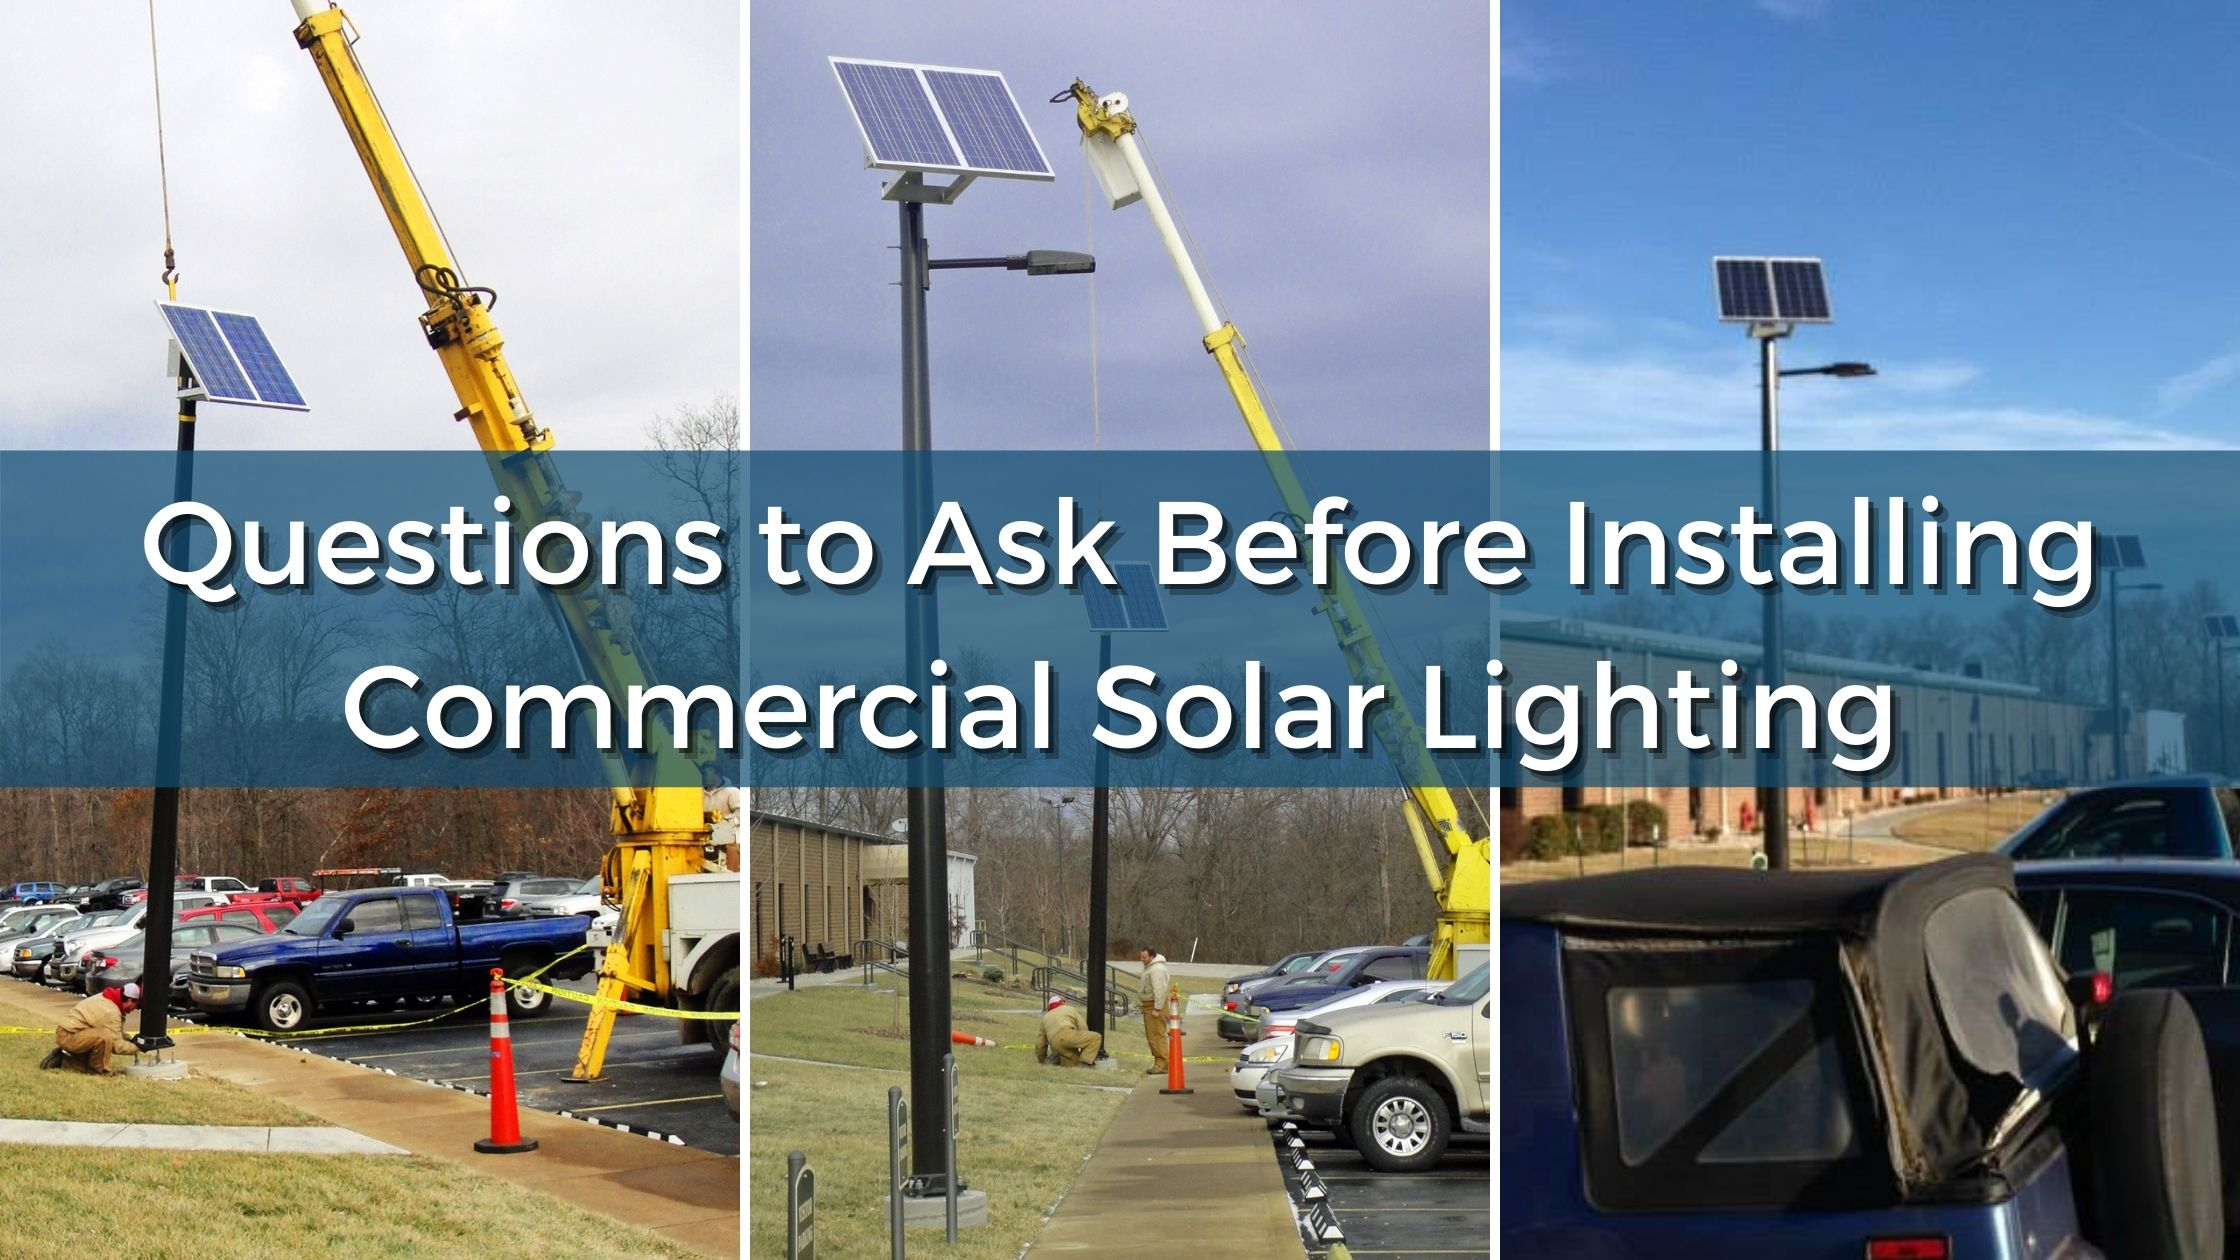 Questions to Ask Before Installing Commercial Solar Lighting